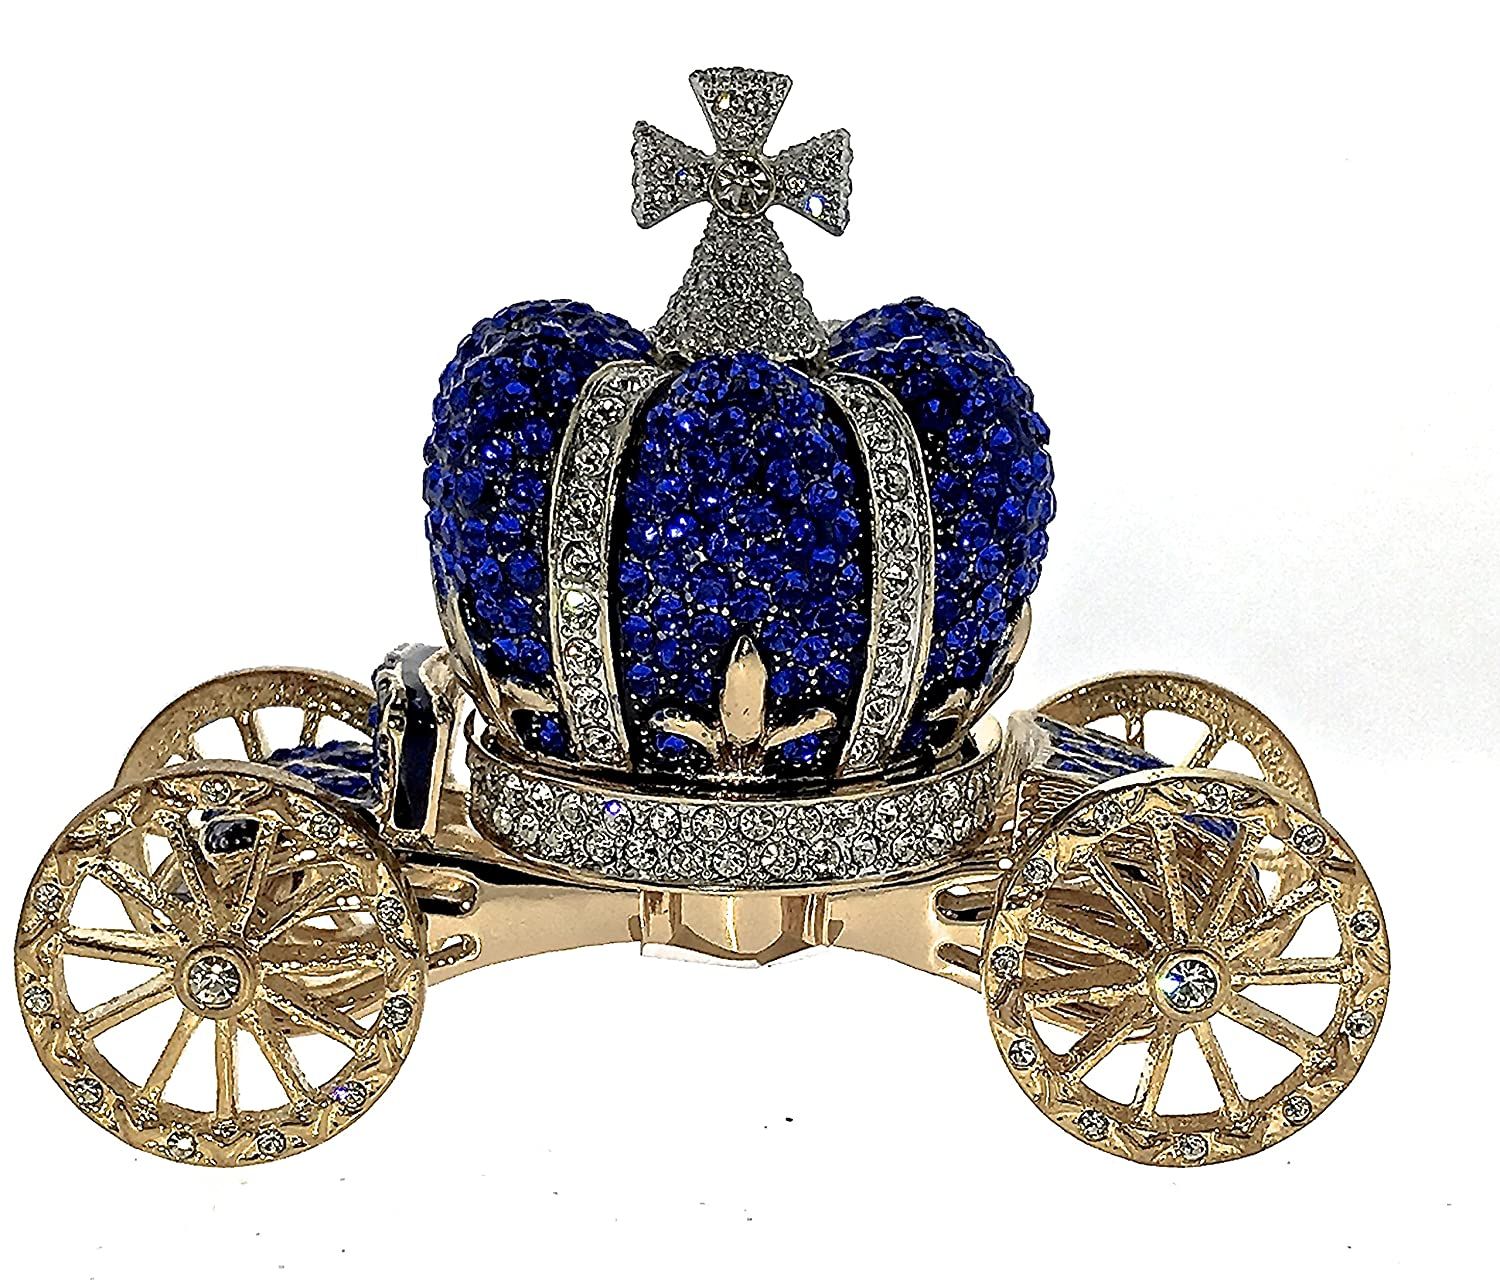 BLUE CROWN COACH Jewelry Trinket Box Enamel Bejeweled Swarovski Crystals Hinged Collectible Keepsake